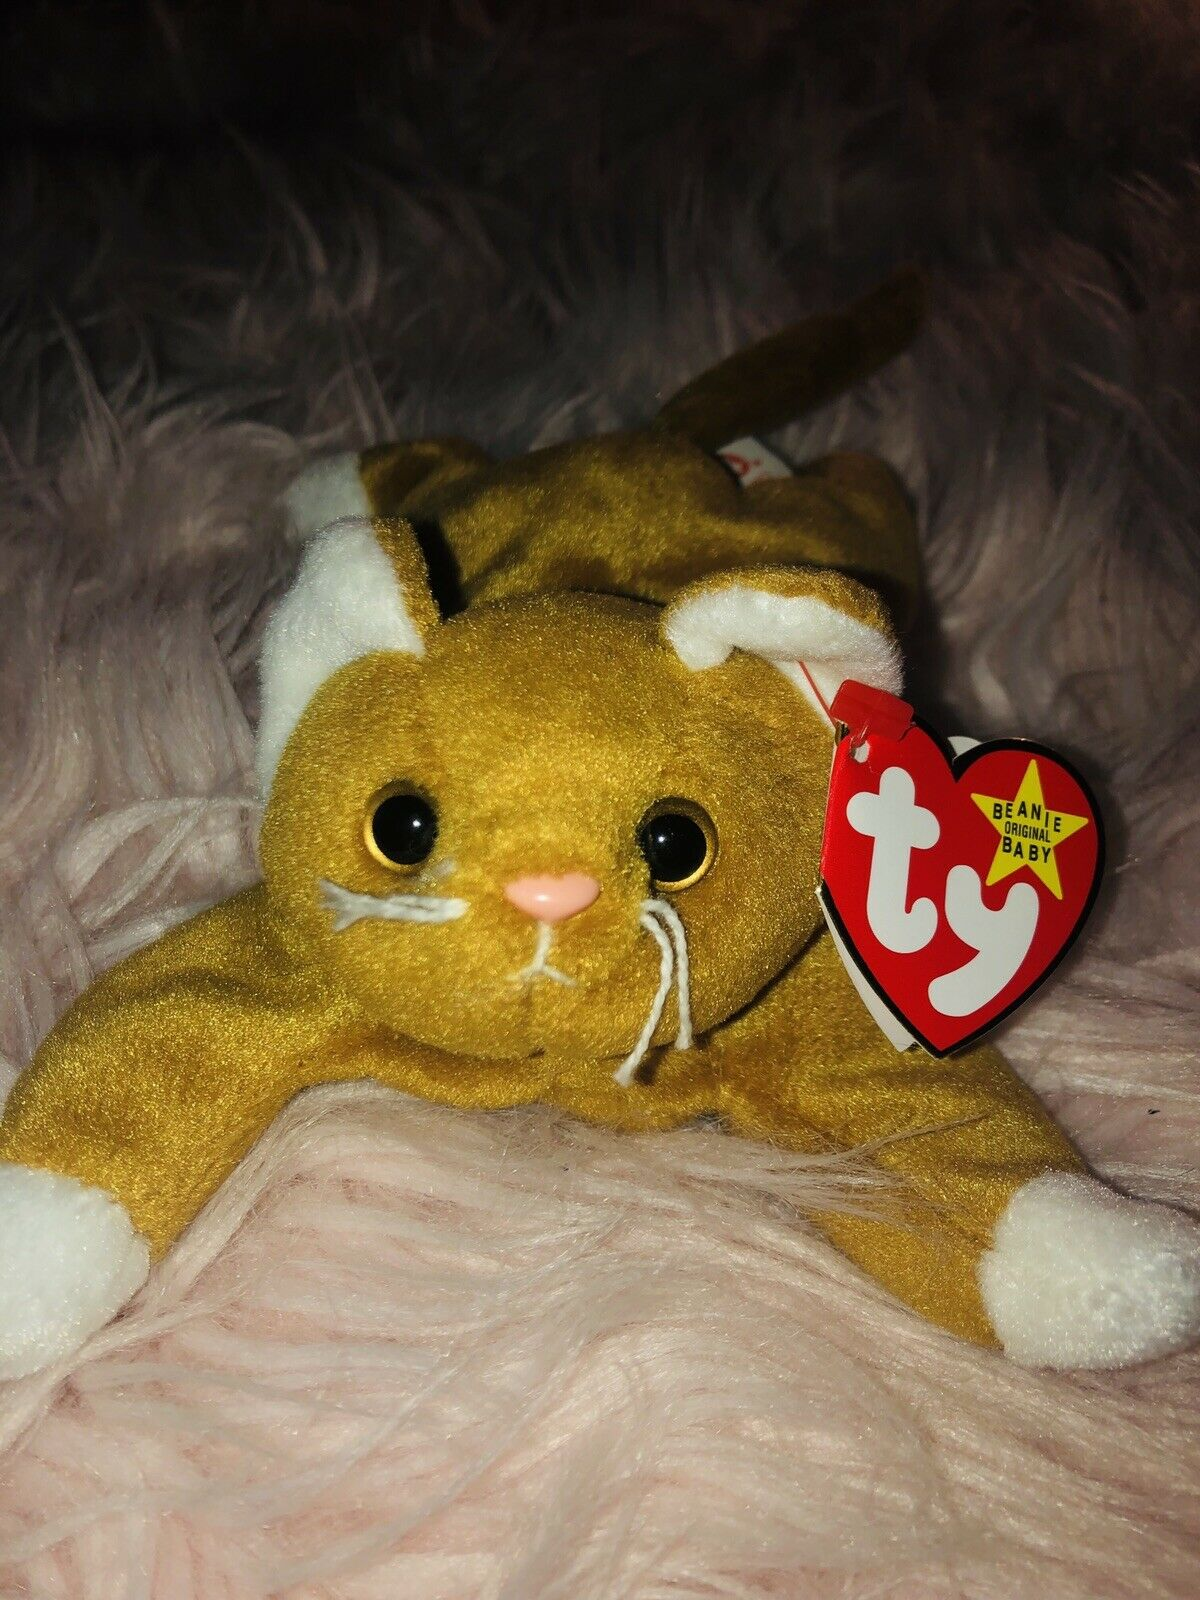 Nip rare beanie baby with P.V.C. pellets pellets pellets and tag errors c8e7aa